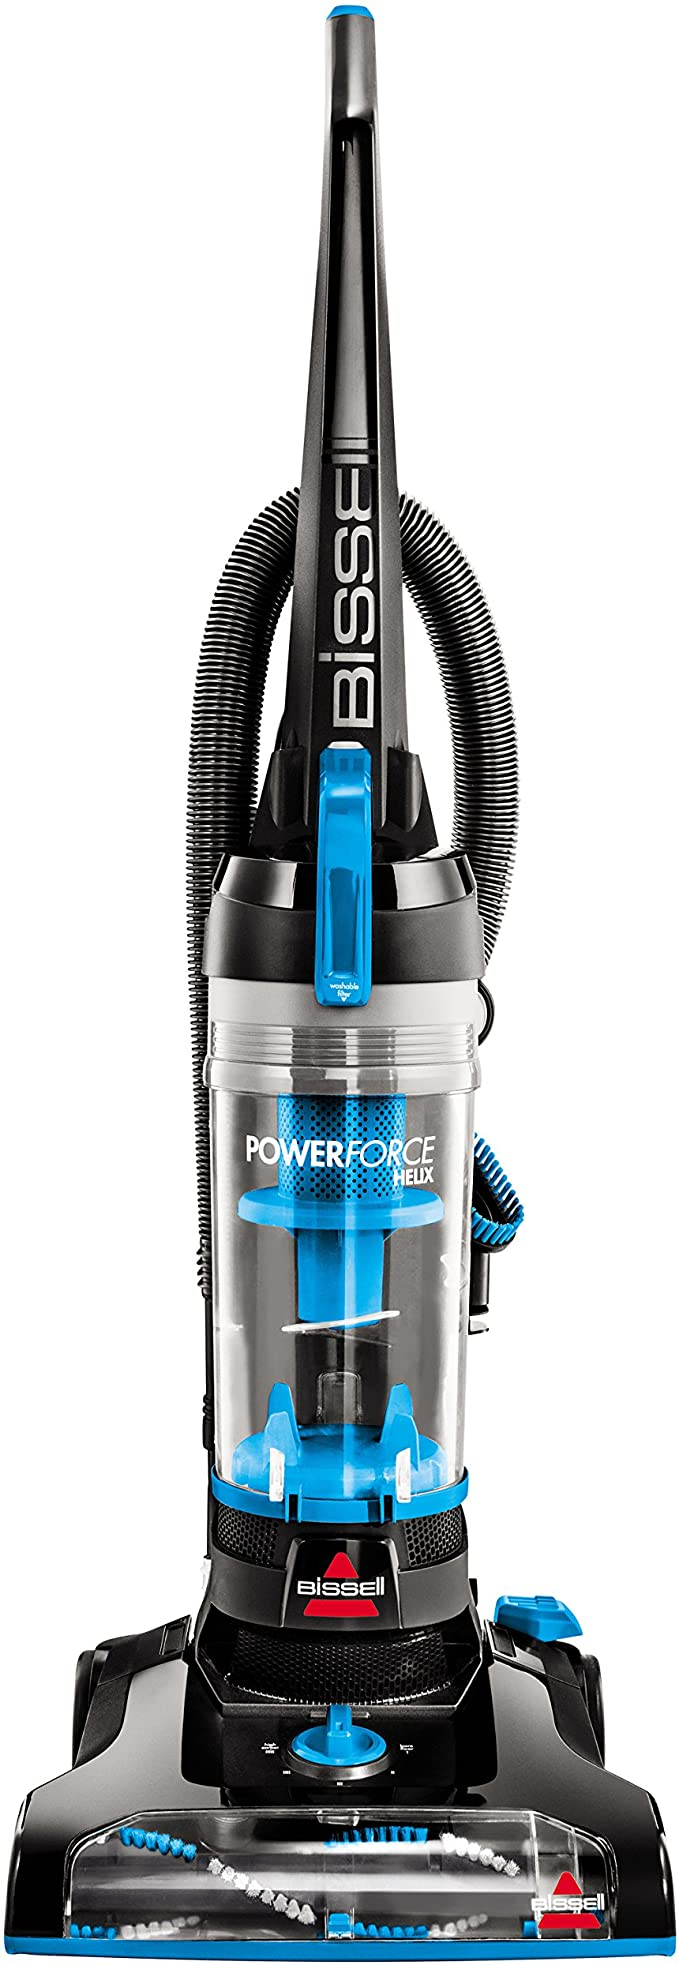 Amazon Com Bissell Powerforce Helix Bagless Upright Vacuum New And Improved Version Of 1700 2191 Health Personal Care